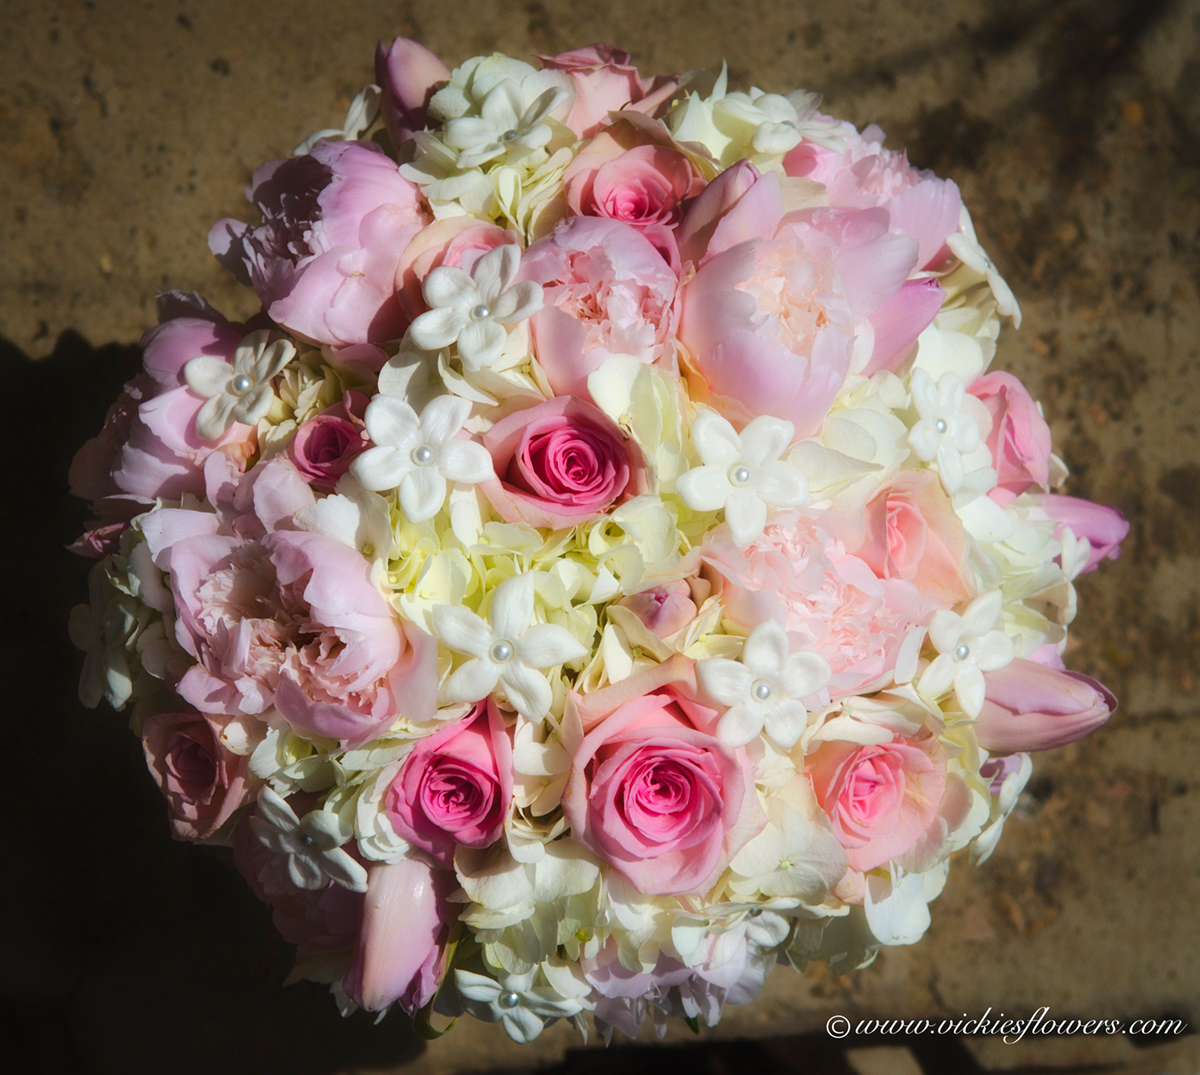 wb 016 beautiful photograph of a pink and pastel colored wedding bouquet with white stephanotis pink roses pink garden roses white hydrangea - Garden Rose Bouquet